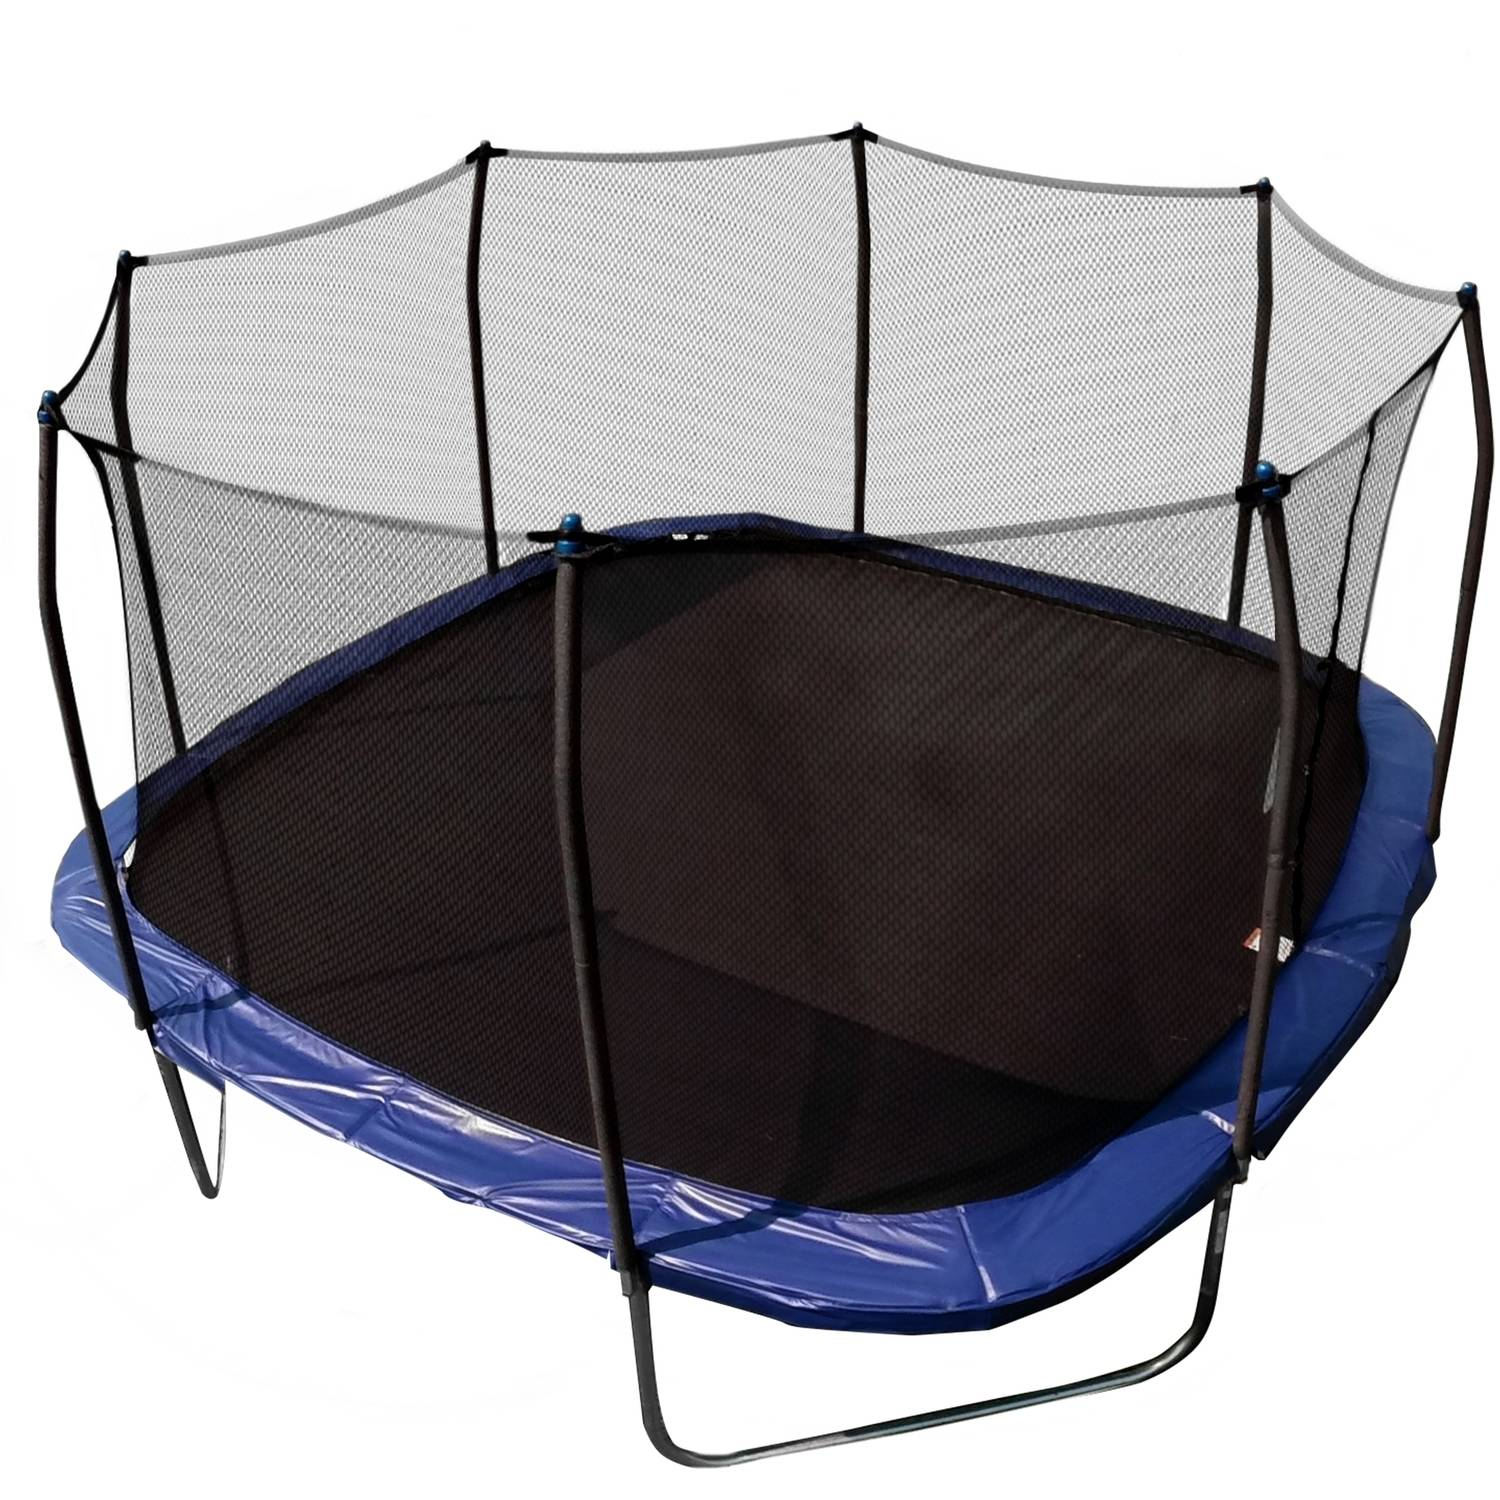 Skywalker Trampolines Square 13-Foot Trampoline, with Enclosure, Blue (Box 1 of 2)